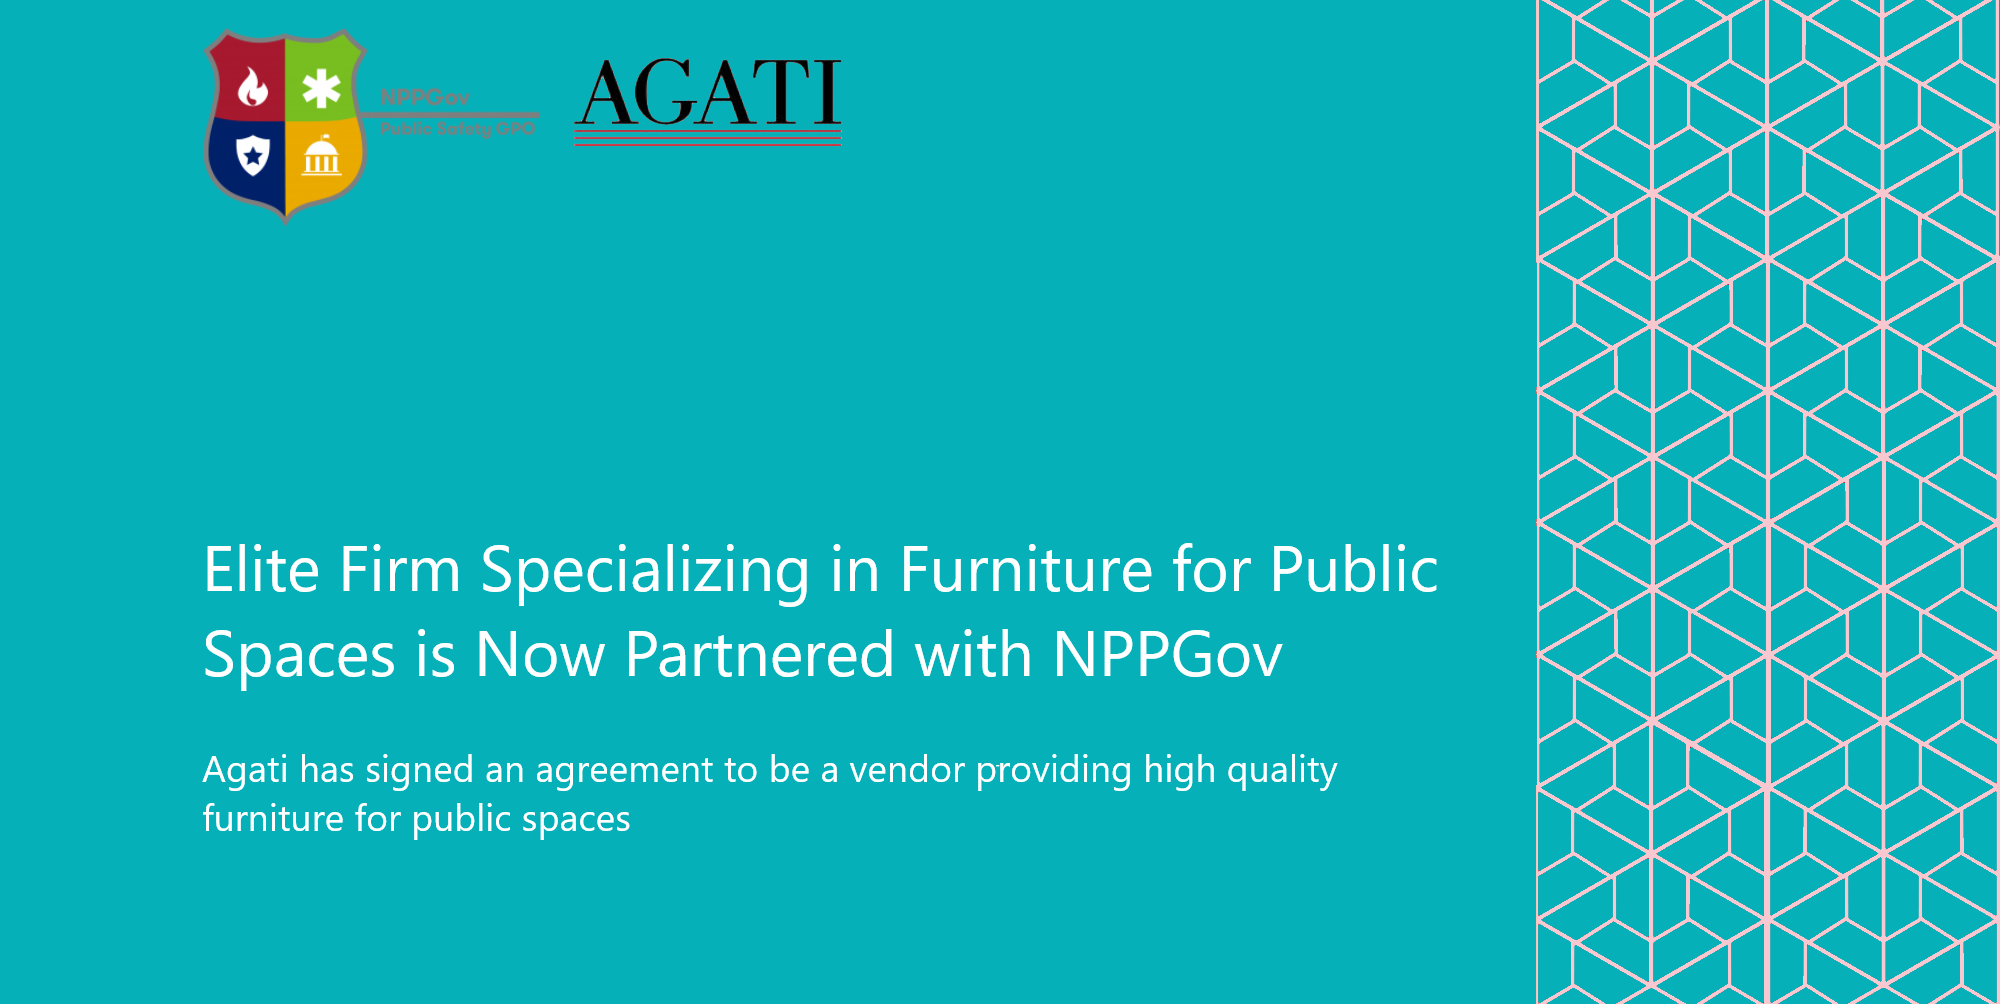 Elite Firm Specializing in Furniture for Public Spaces is Now Partnered with NPPGov